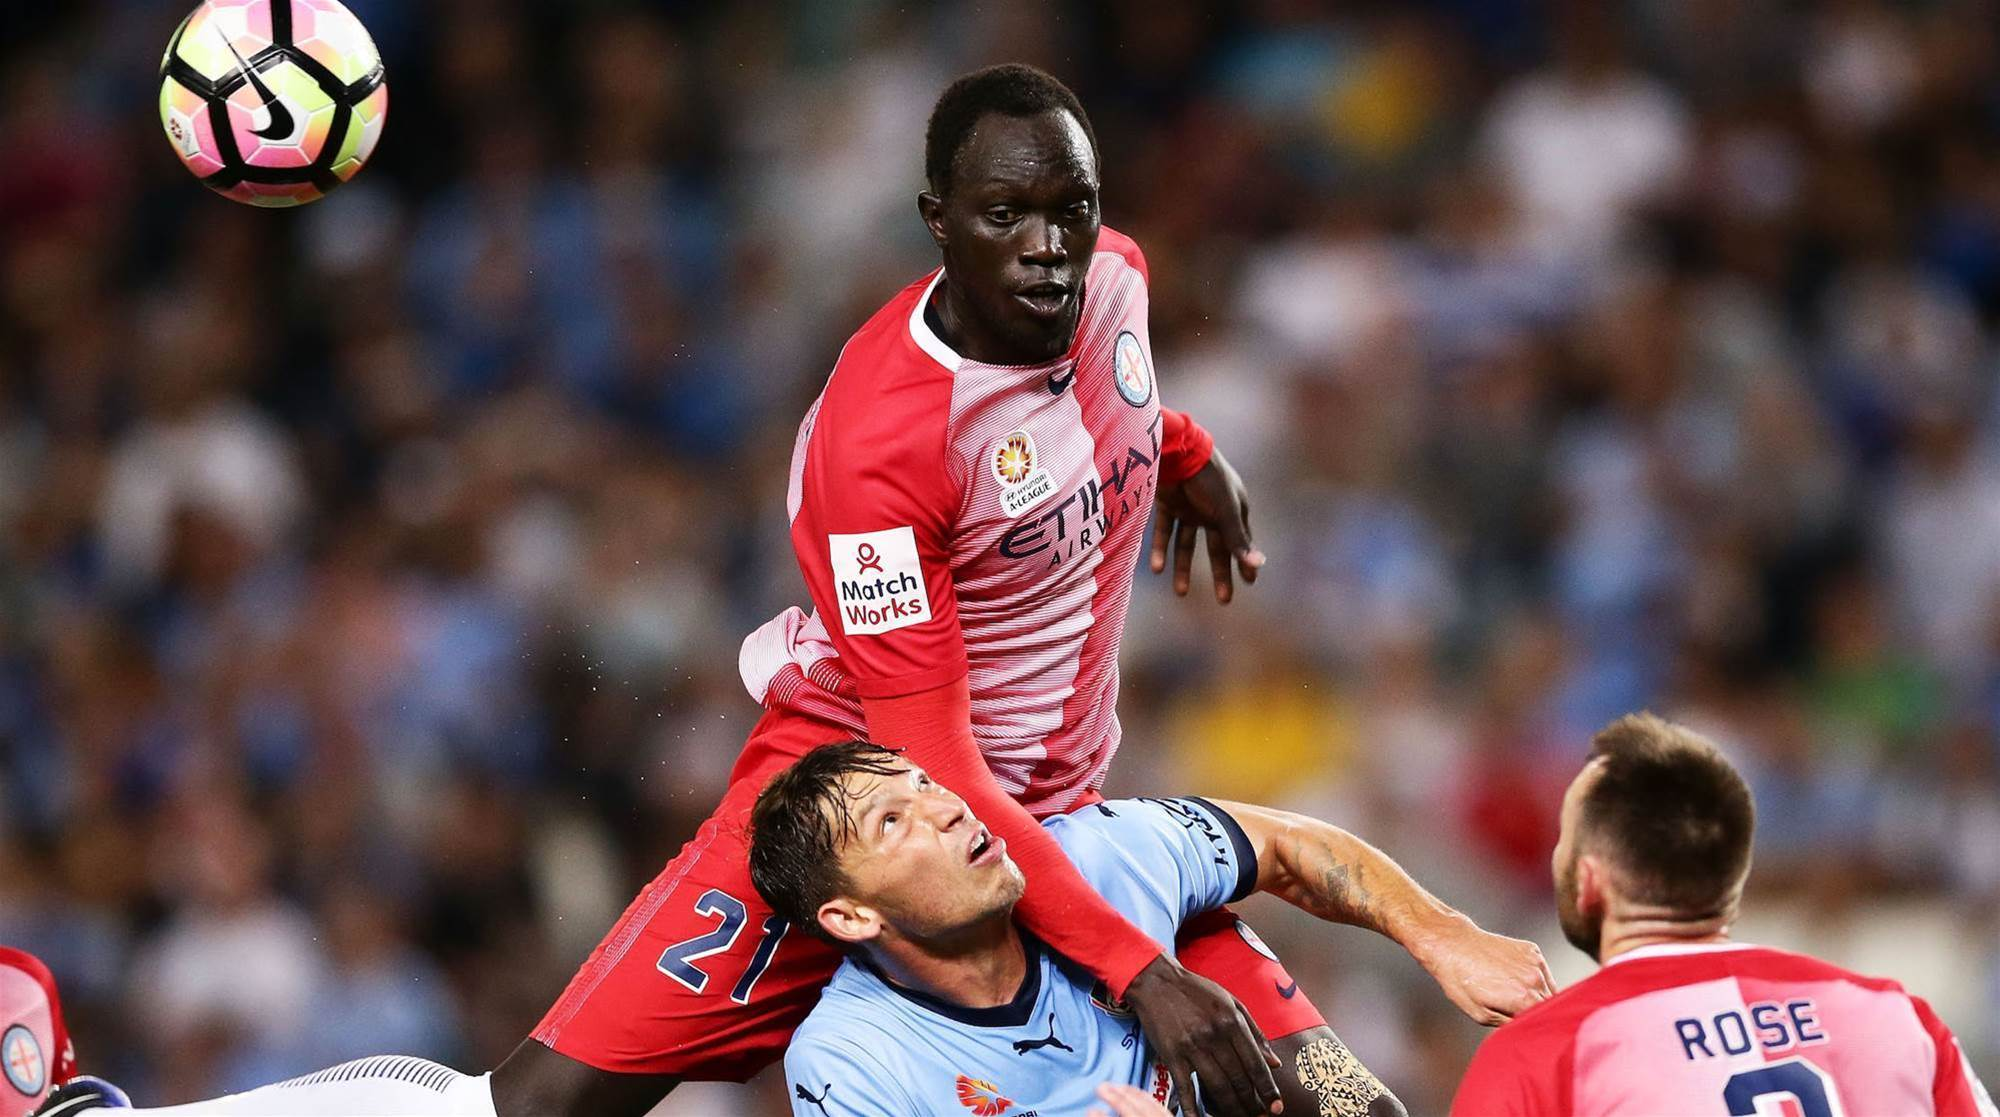 Wanderers swoop for City trio